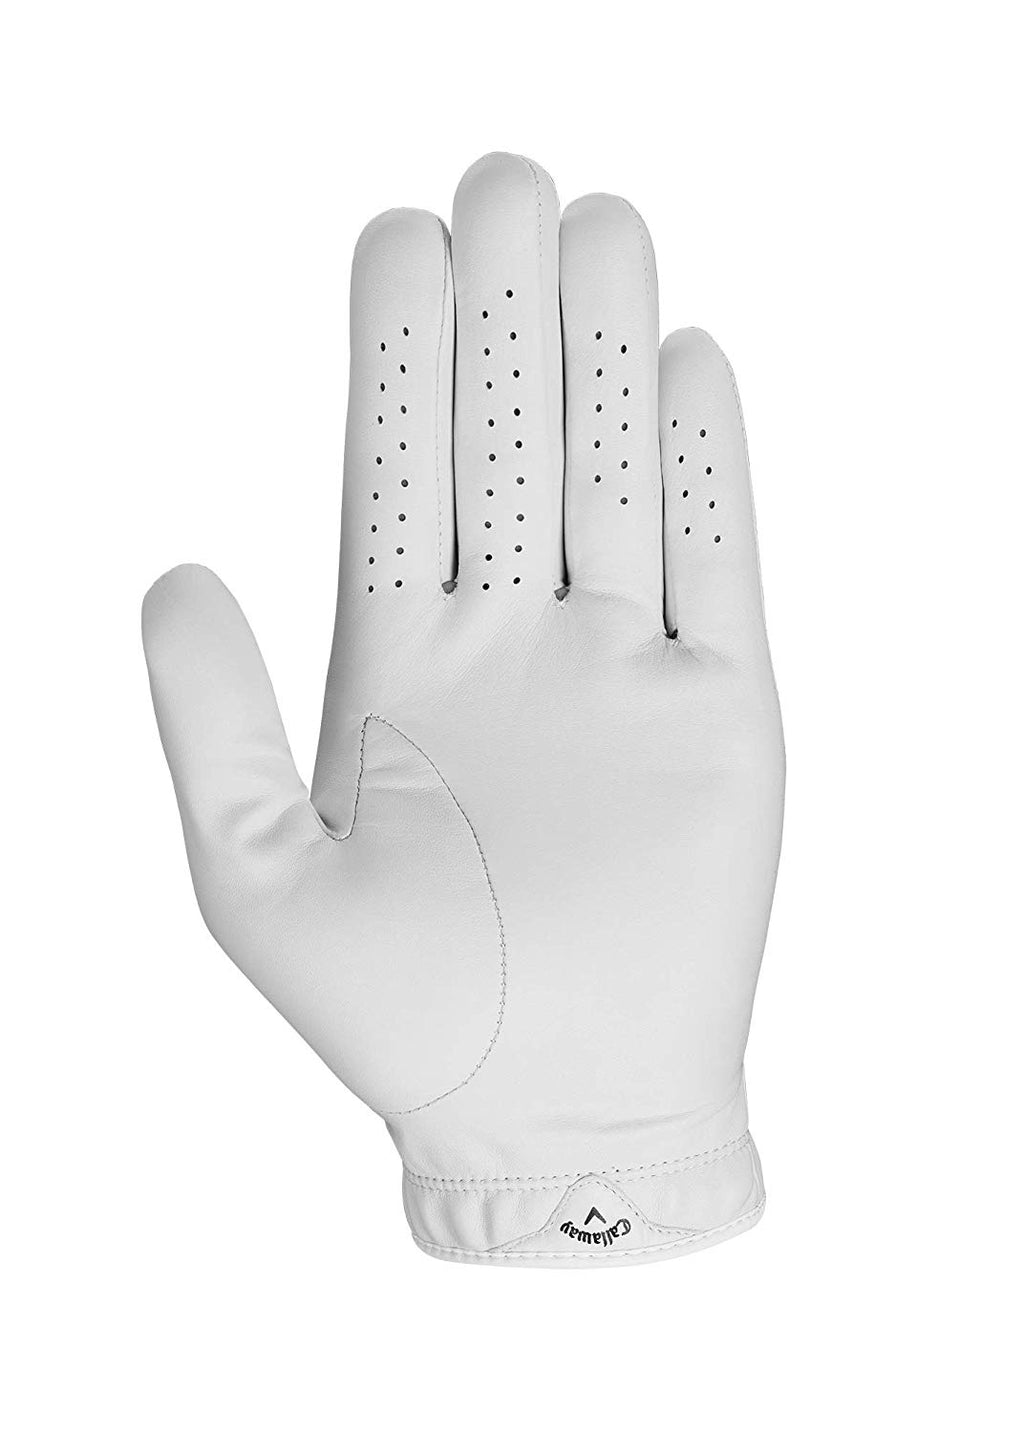 Callaway Tour Authentic Golf Glove 2019